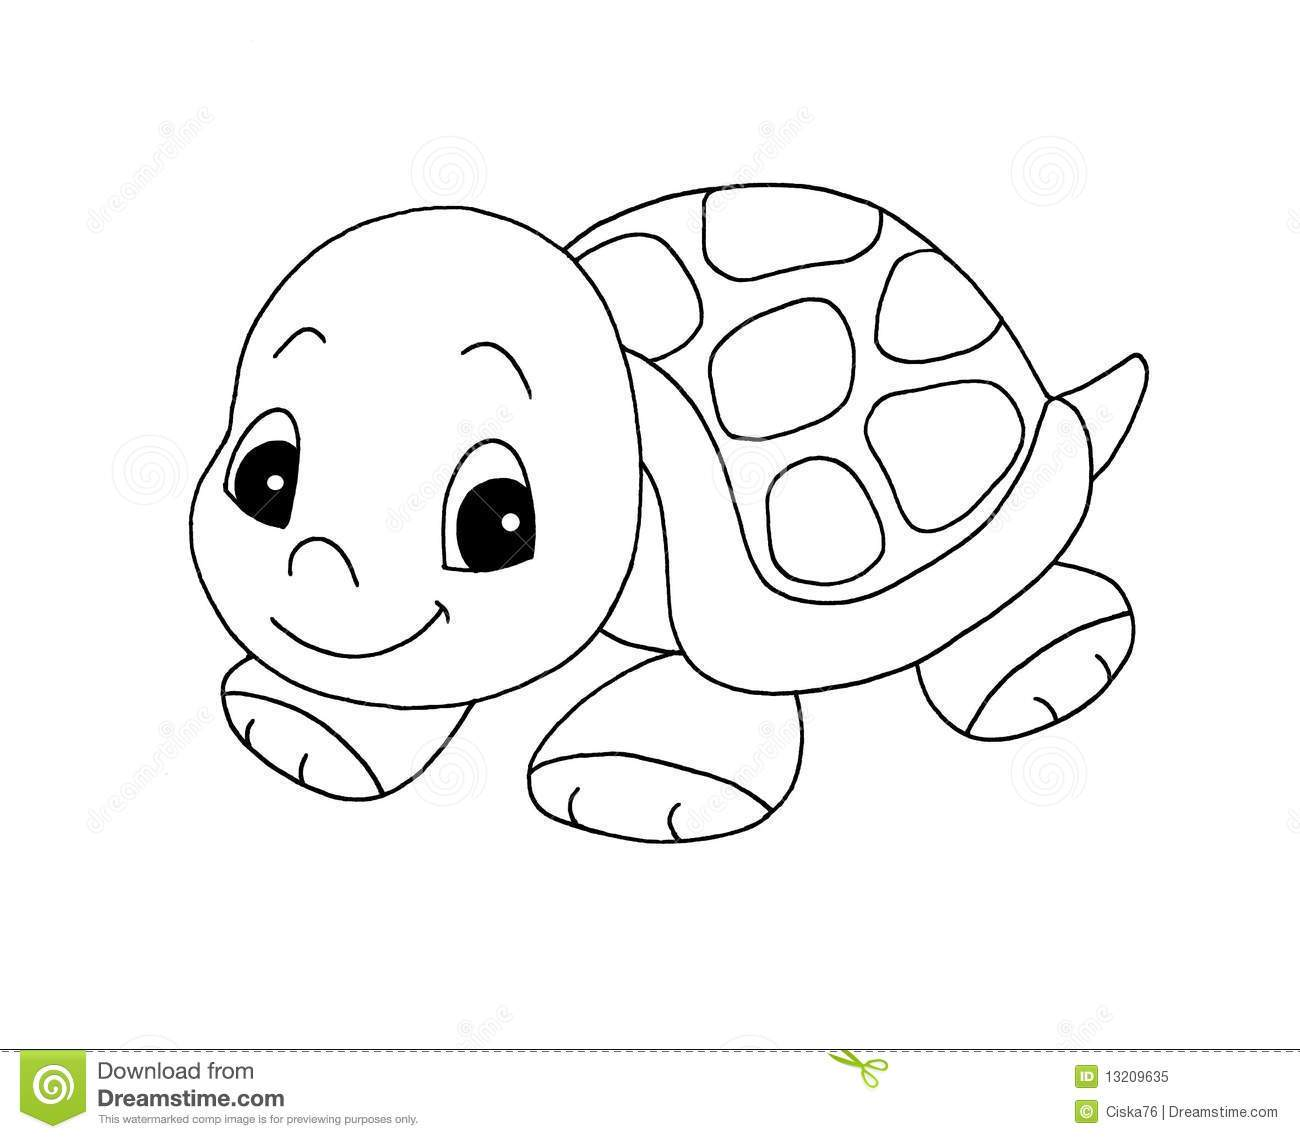 Cute baby animal clipart black and white 7 » Clipart Portal.